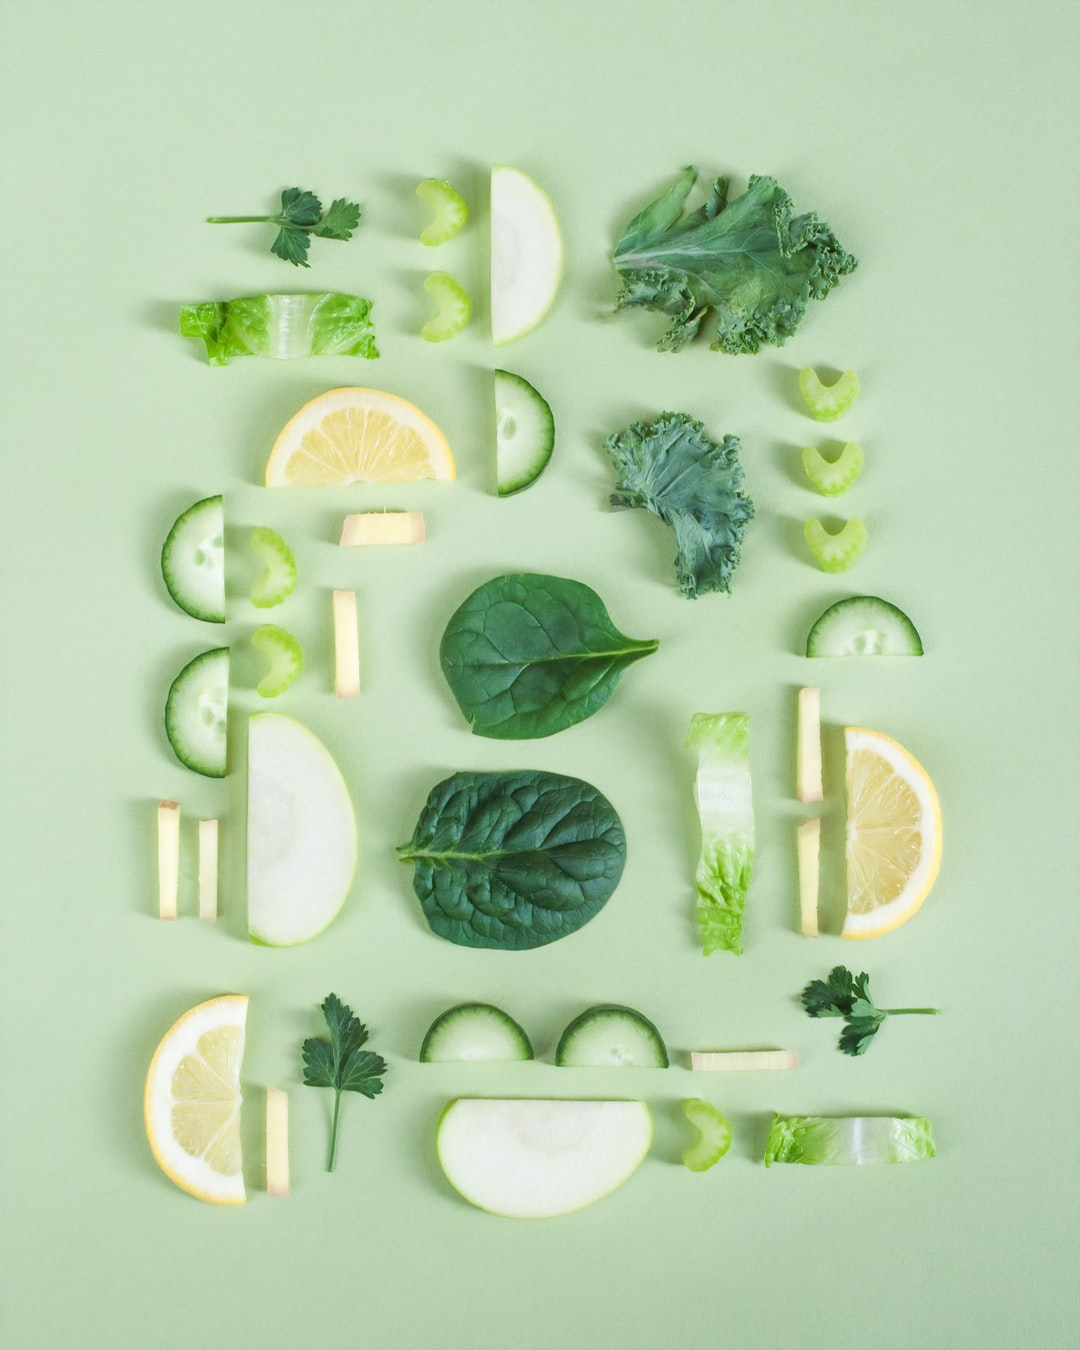 5 Simple Green Juice Recipes That Are Healthy and Tasty